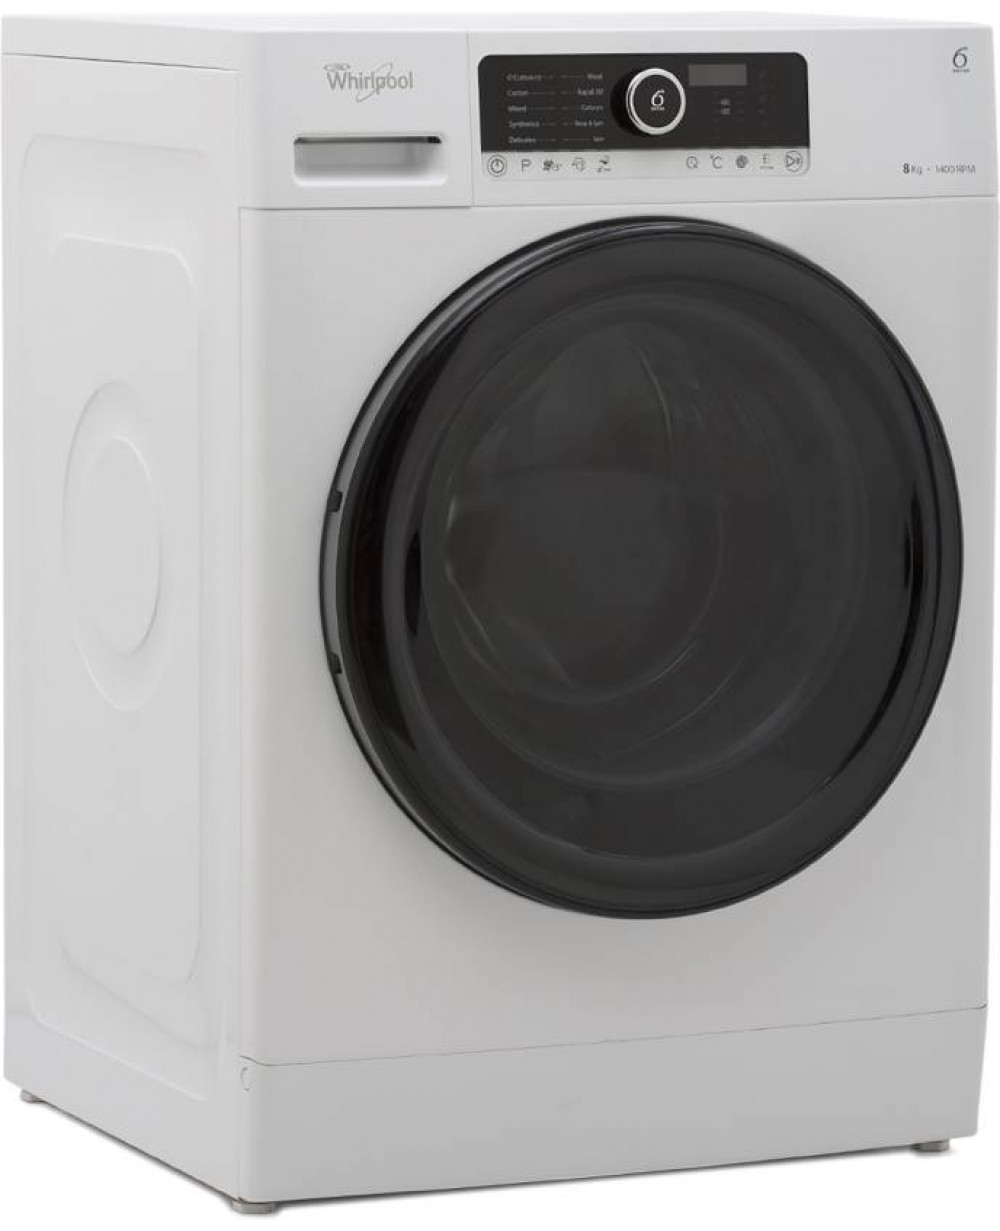 Whirlpool Washing Machine Fully Automatic Front Loading 8 kg WRF 802 AHW